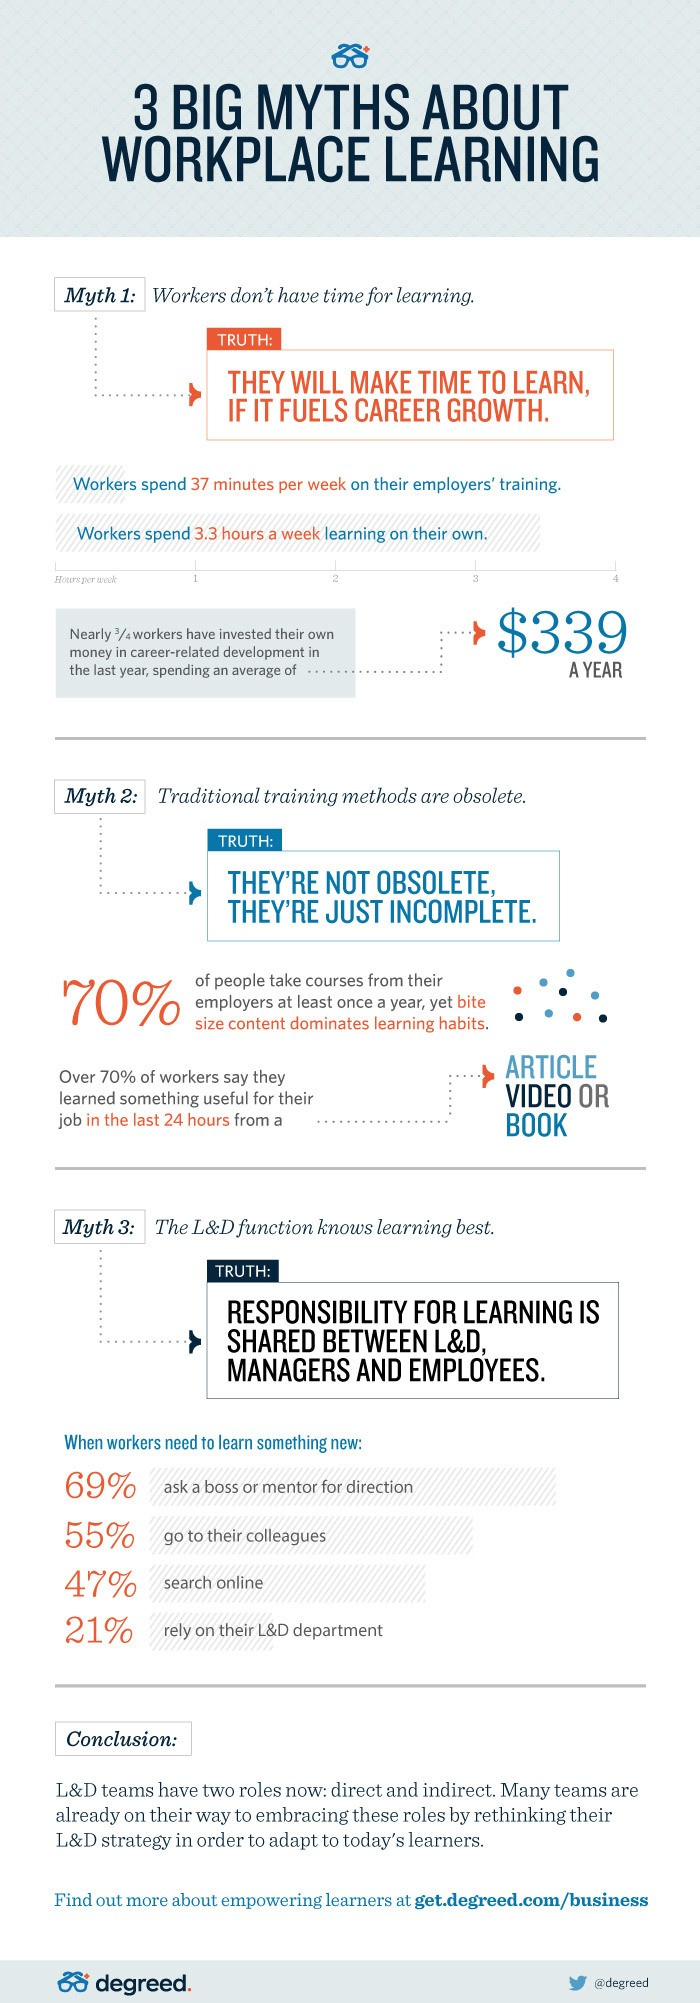 Myths about Workplace Learning Debunked Infographic